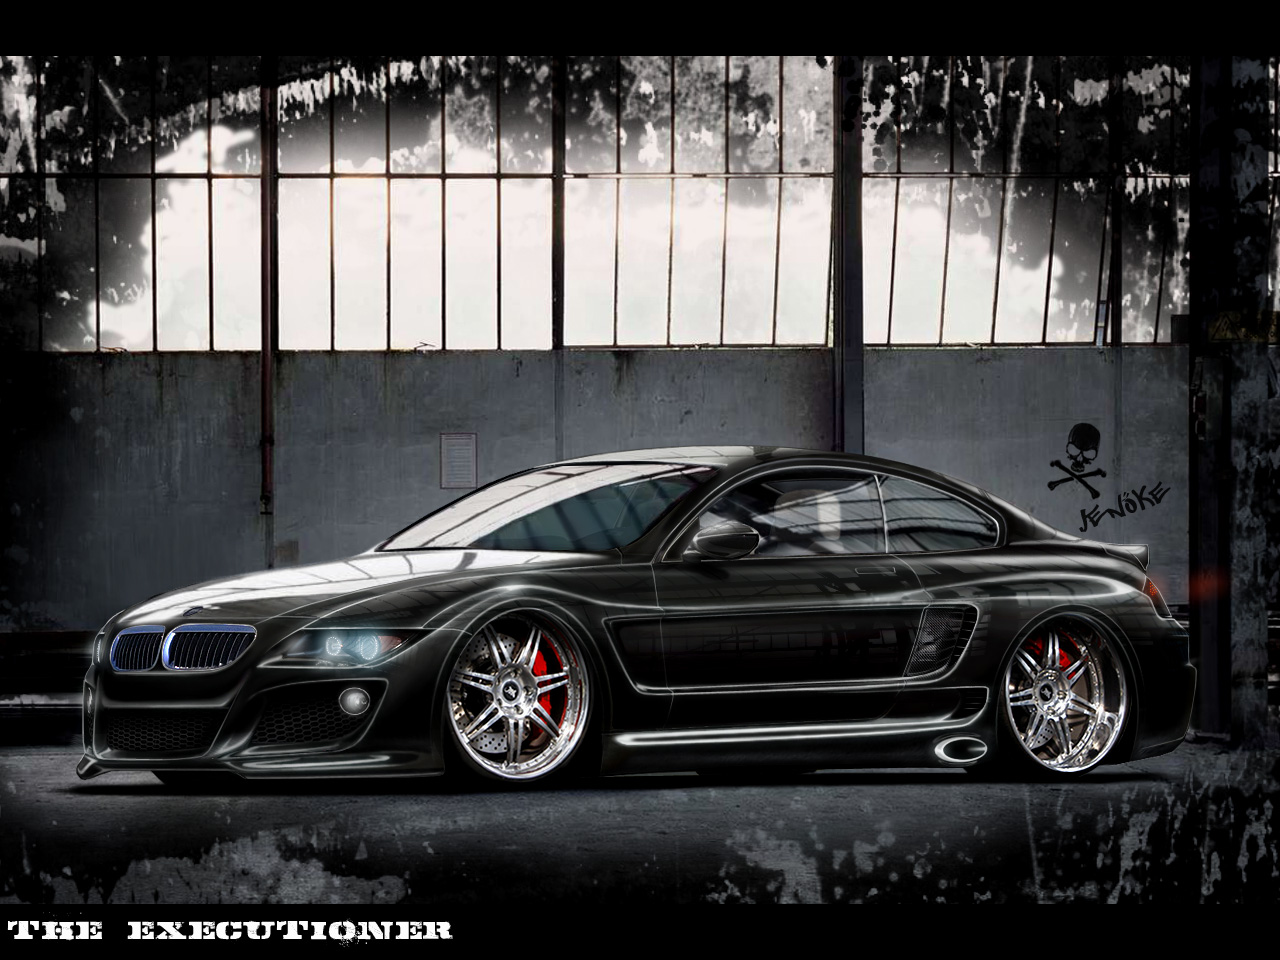 bmw_m6_executioner_by_rookiejeno.jpg